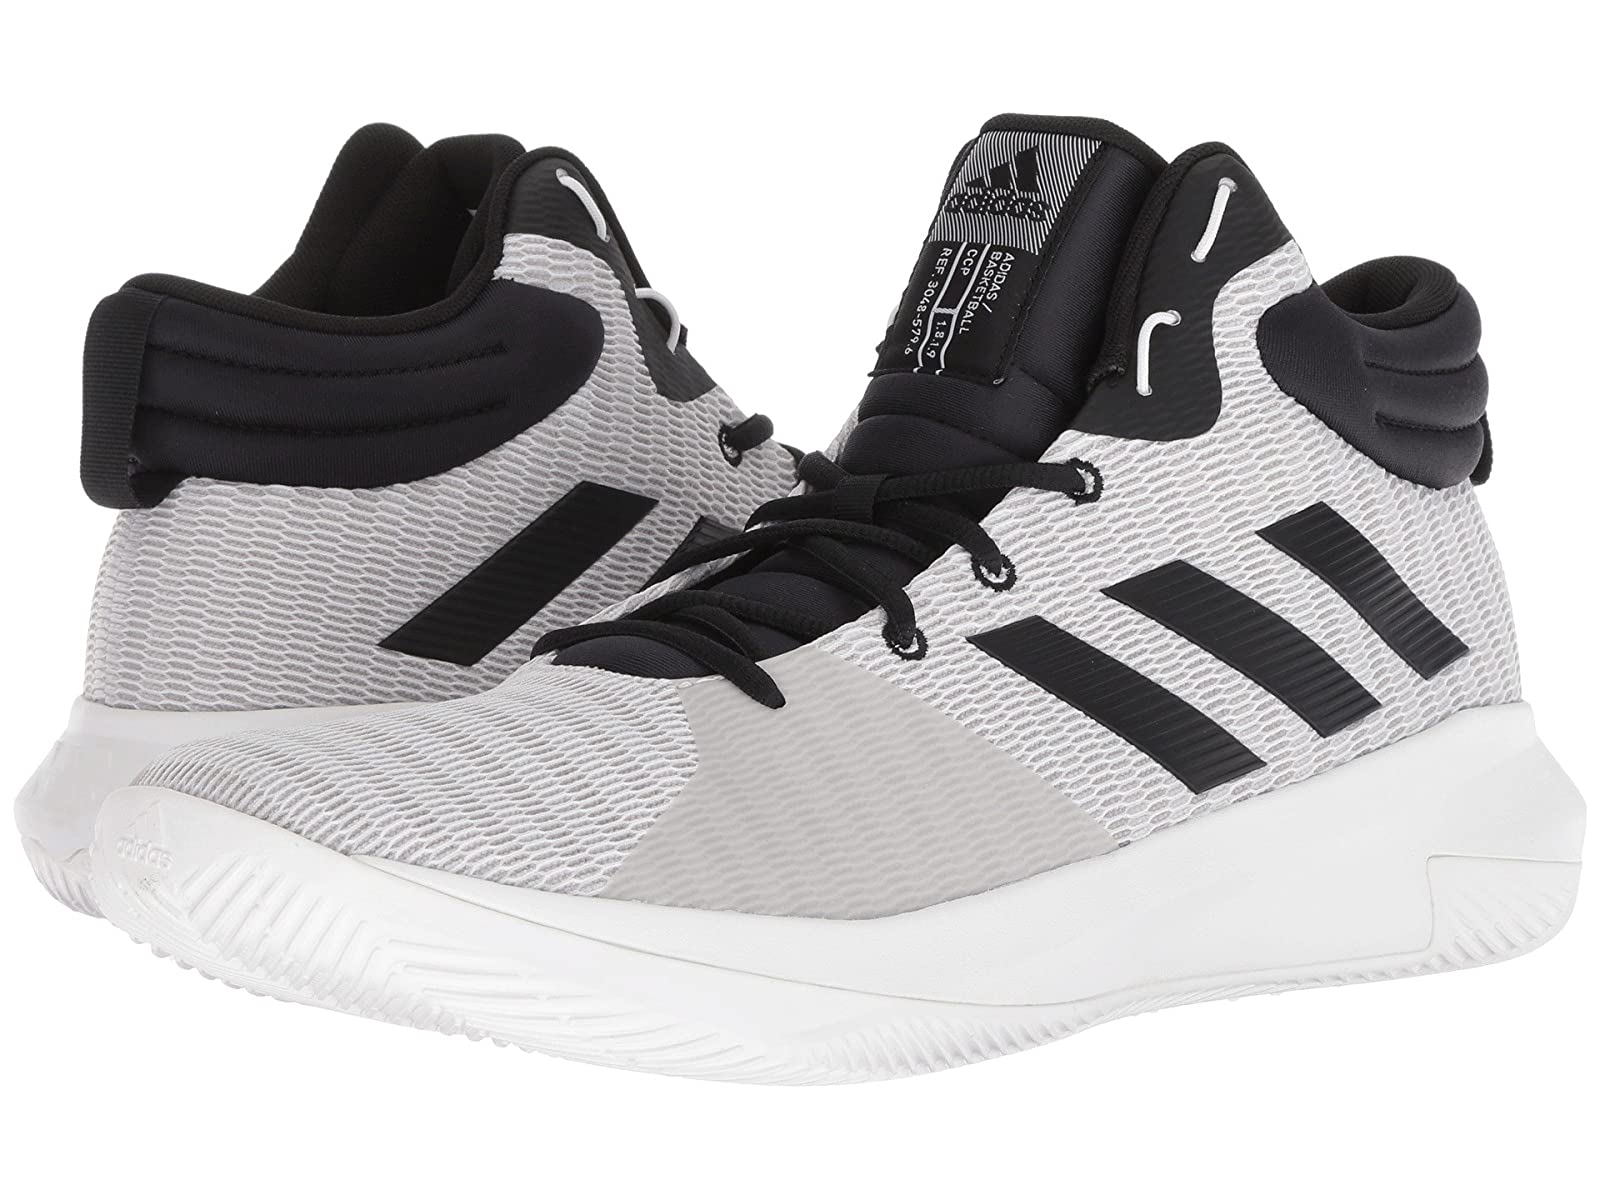 adidas Pro ElevateAtmospheric grades have affordable shoes